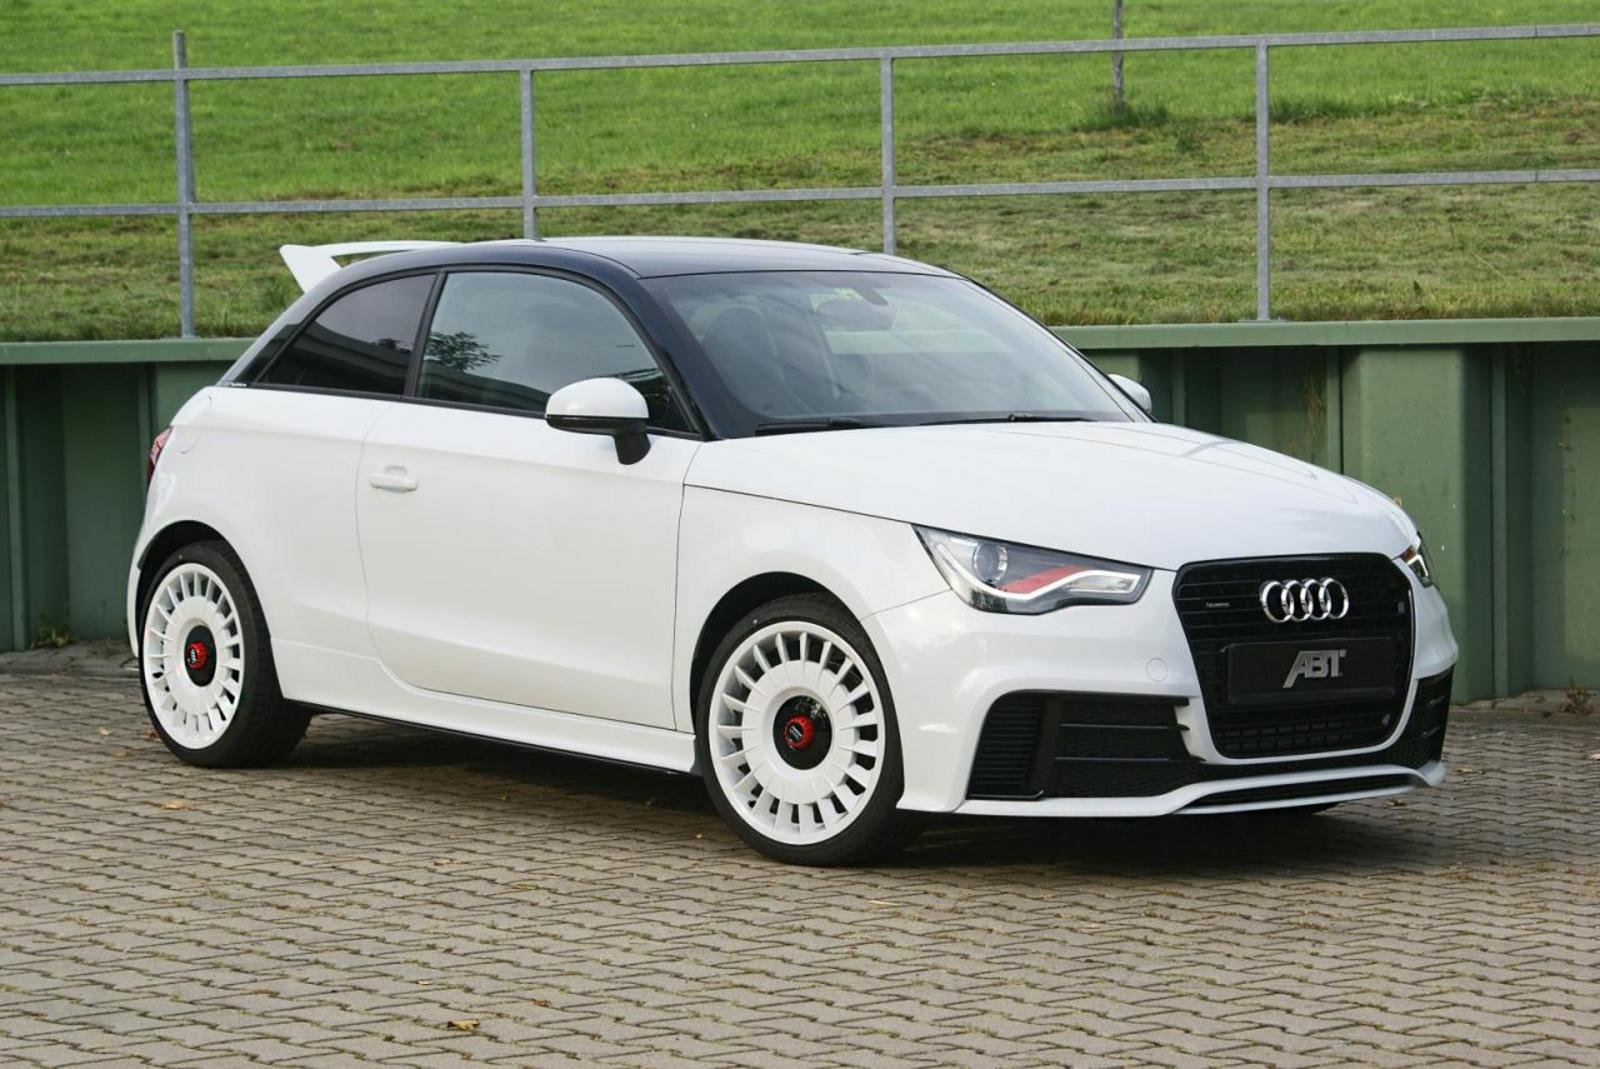 2013 audi a1 quattro by abt sportsline review top speed. Black Bedroom Furniture Sets. Home Design Ideas